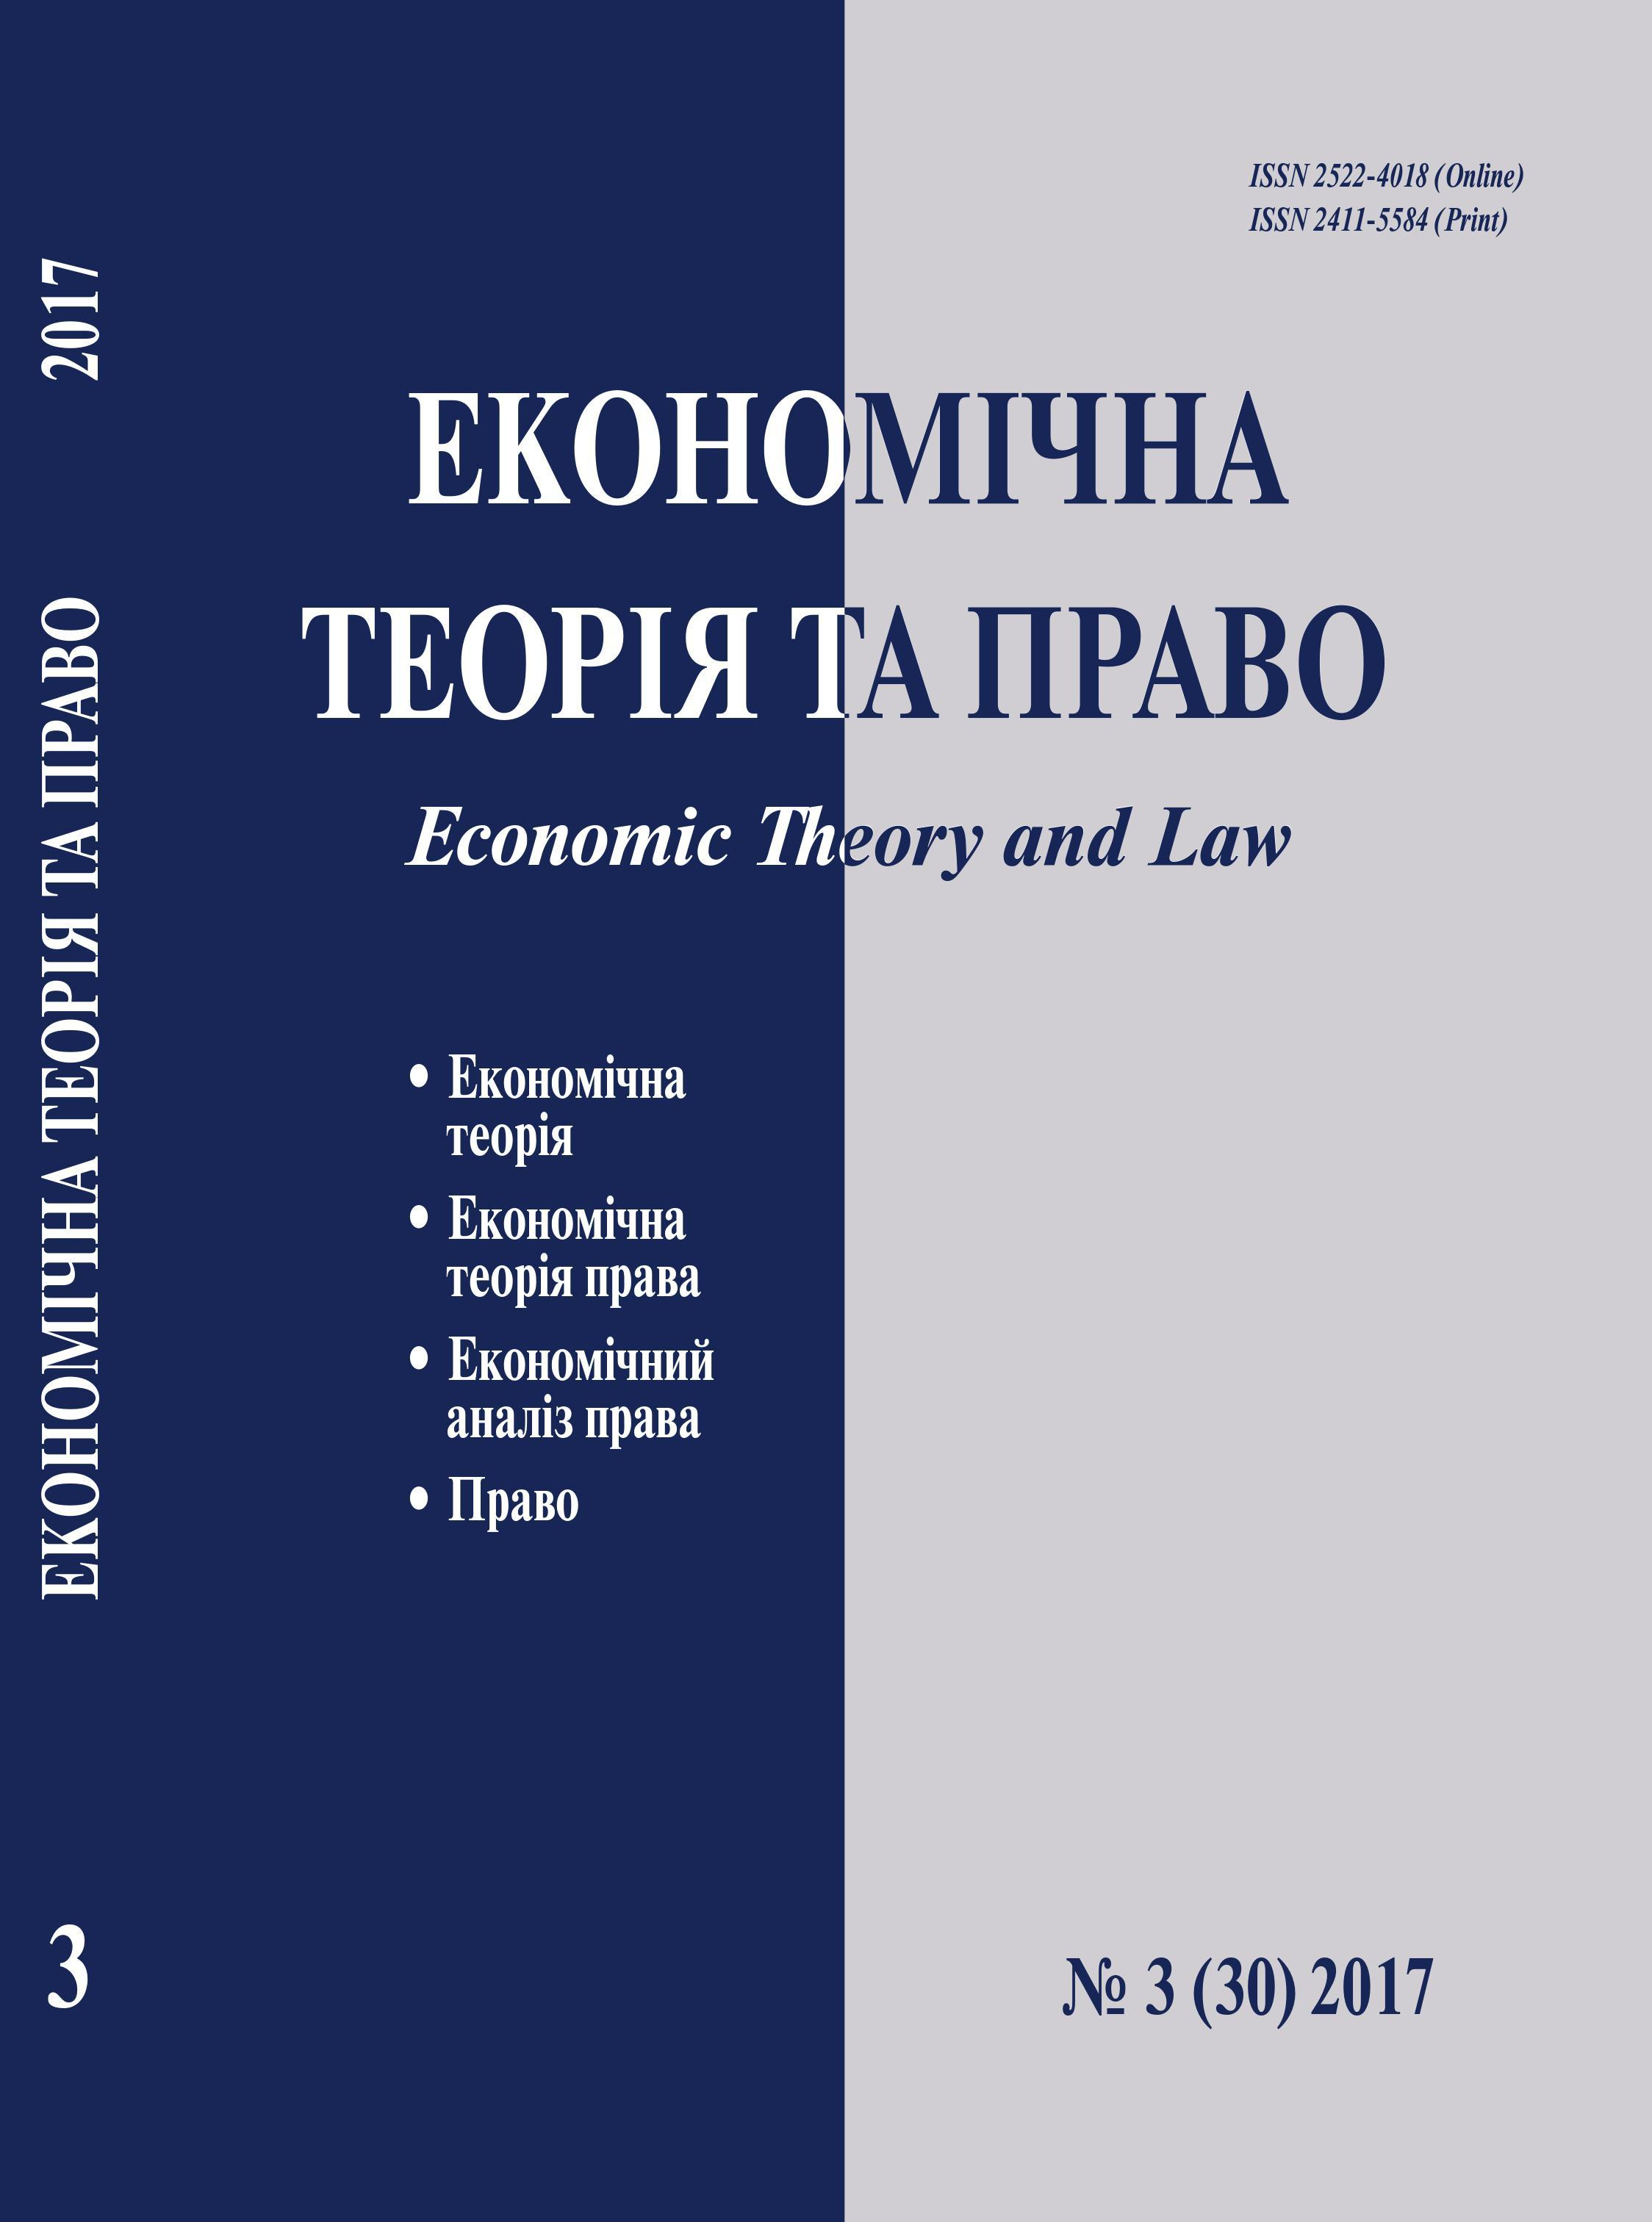 Economic Theory and Law Cover Image